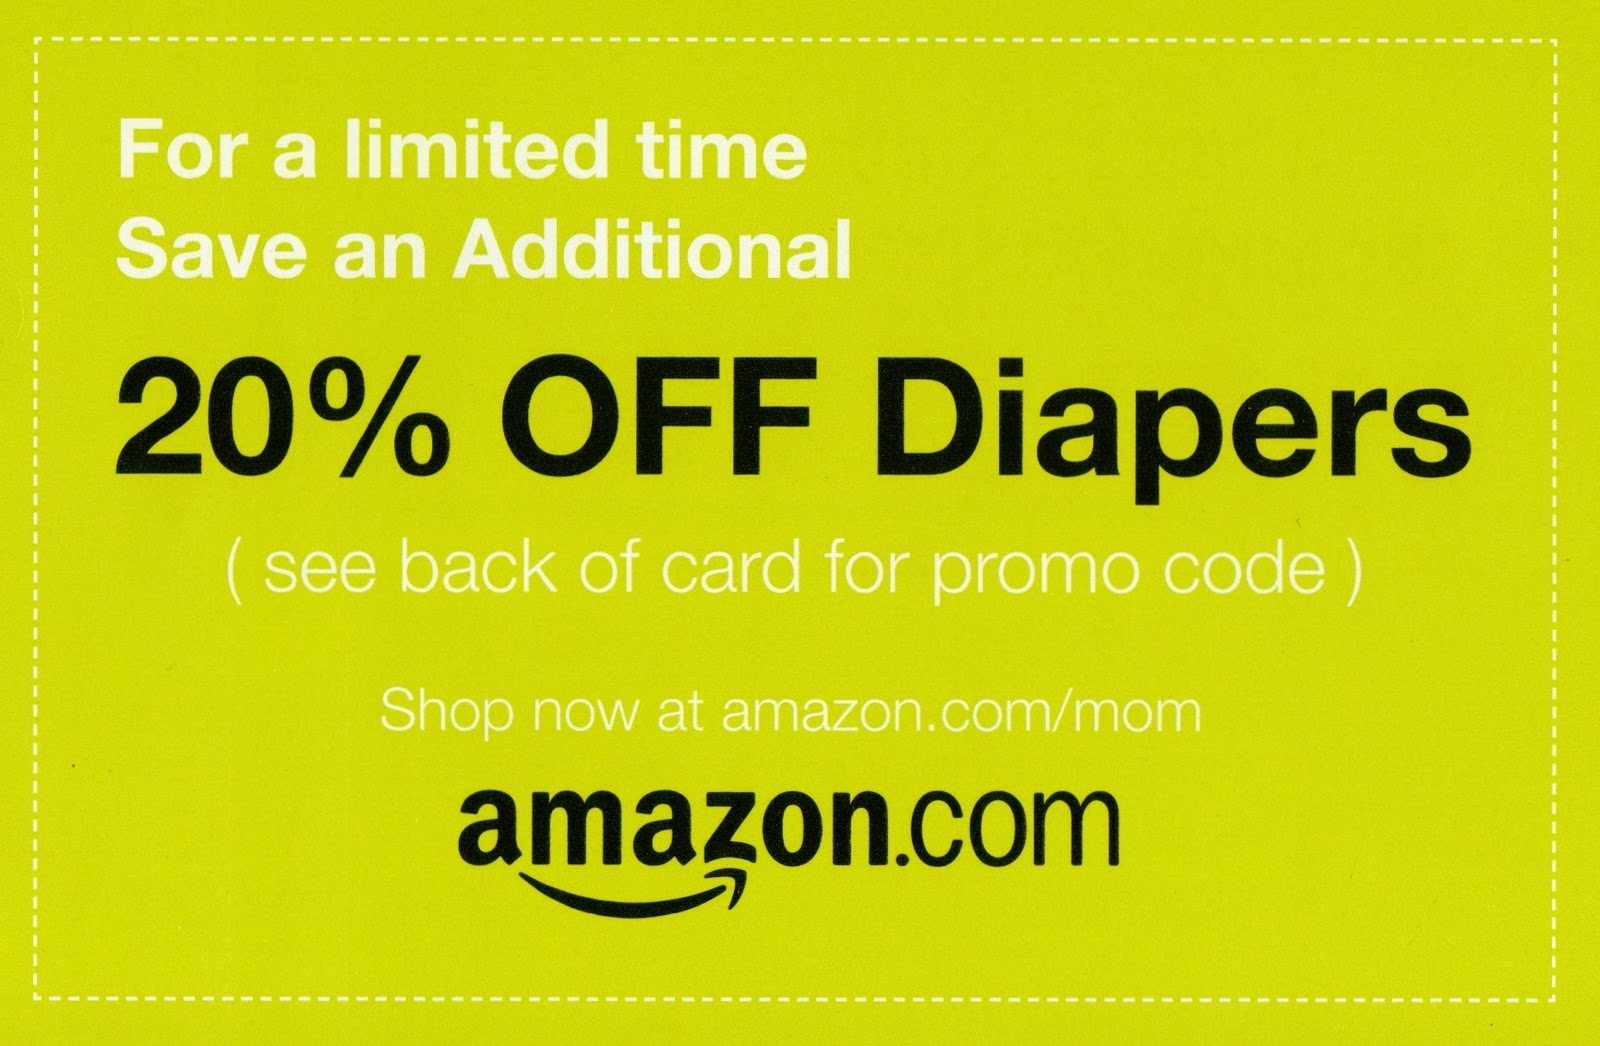 Amazon.com discount coupons